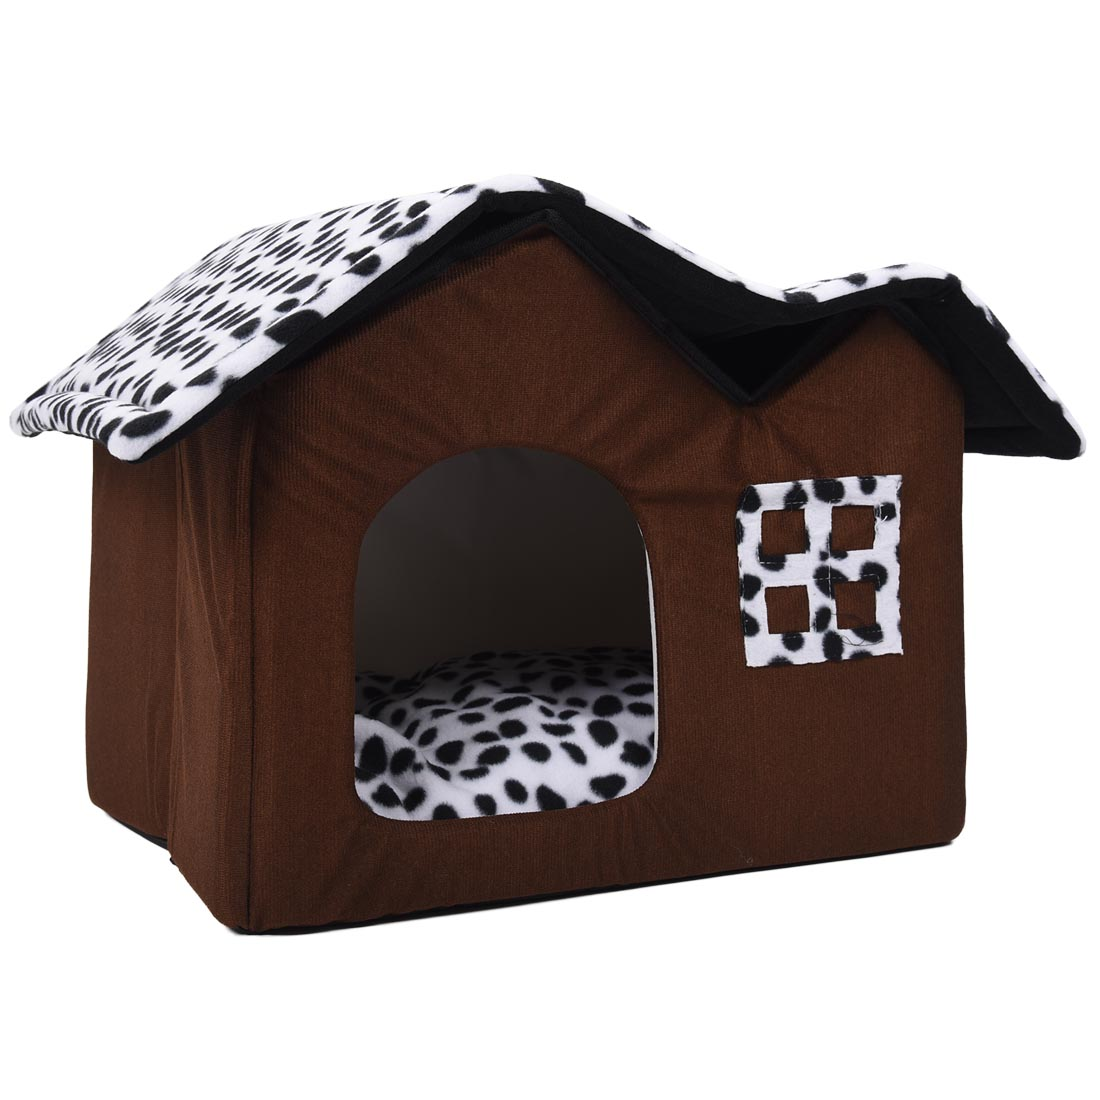 Aliexpress Buy Hot Pet House Luxury High End Double Dog Room